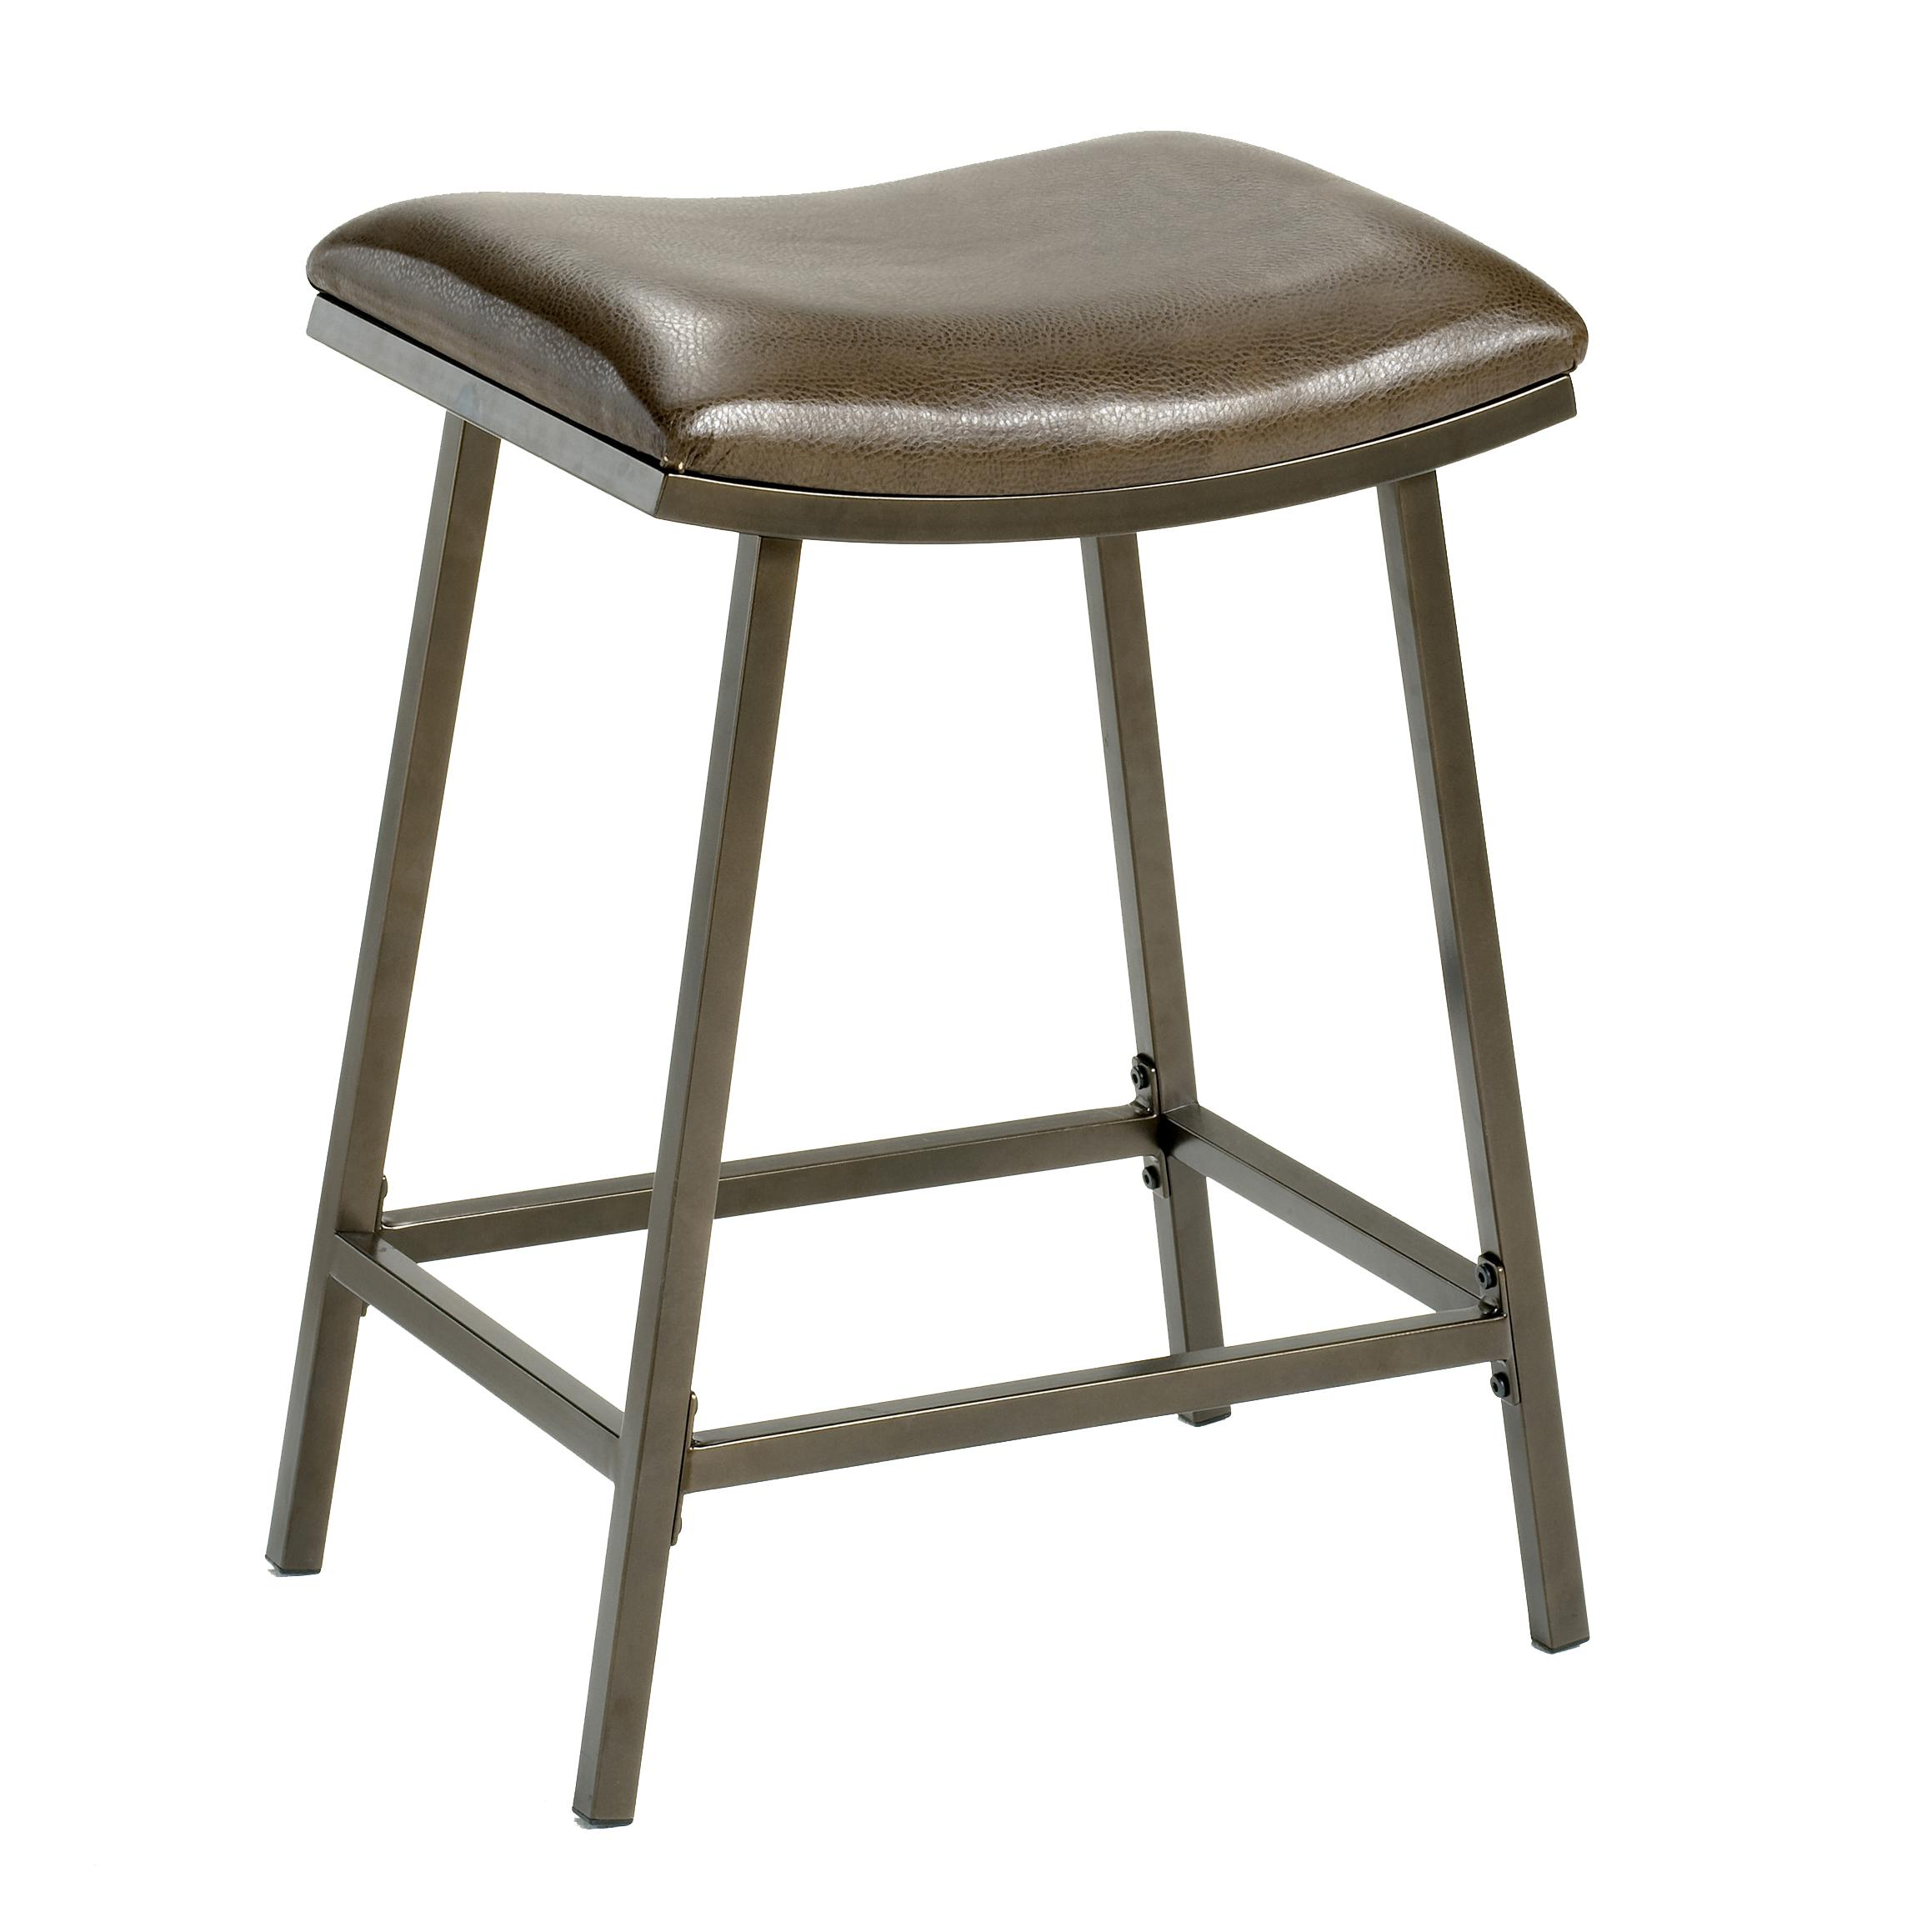 Hilale Backless Bar Stools Saddle Counter Barstool With Nested Leg Item Number 63725